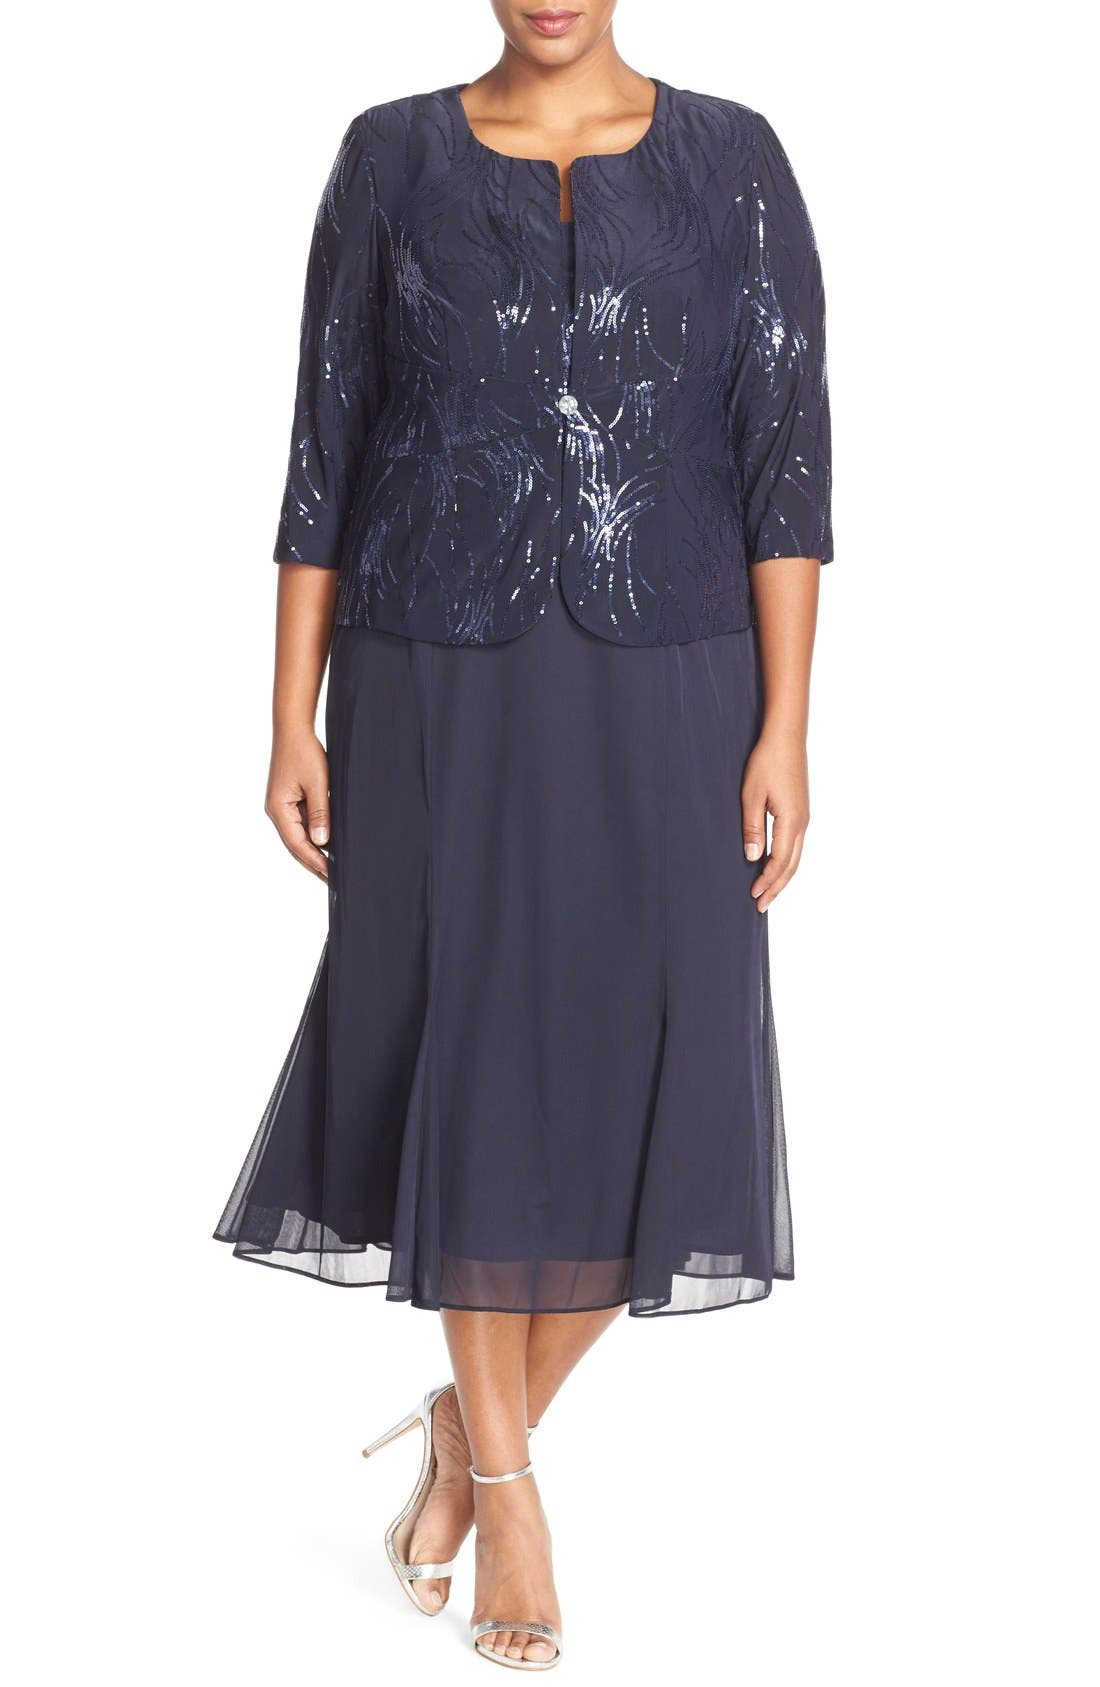 1930s Dresses | 30s Art Deco Dress Plus Size Womens Alex Evenings Sequin Mock Two-Piece Dress With Jacket Size 24W - Blue $159.79 AT vintagedancer.com